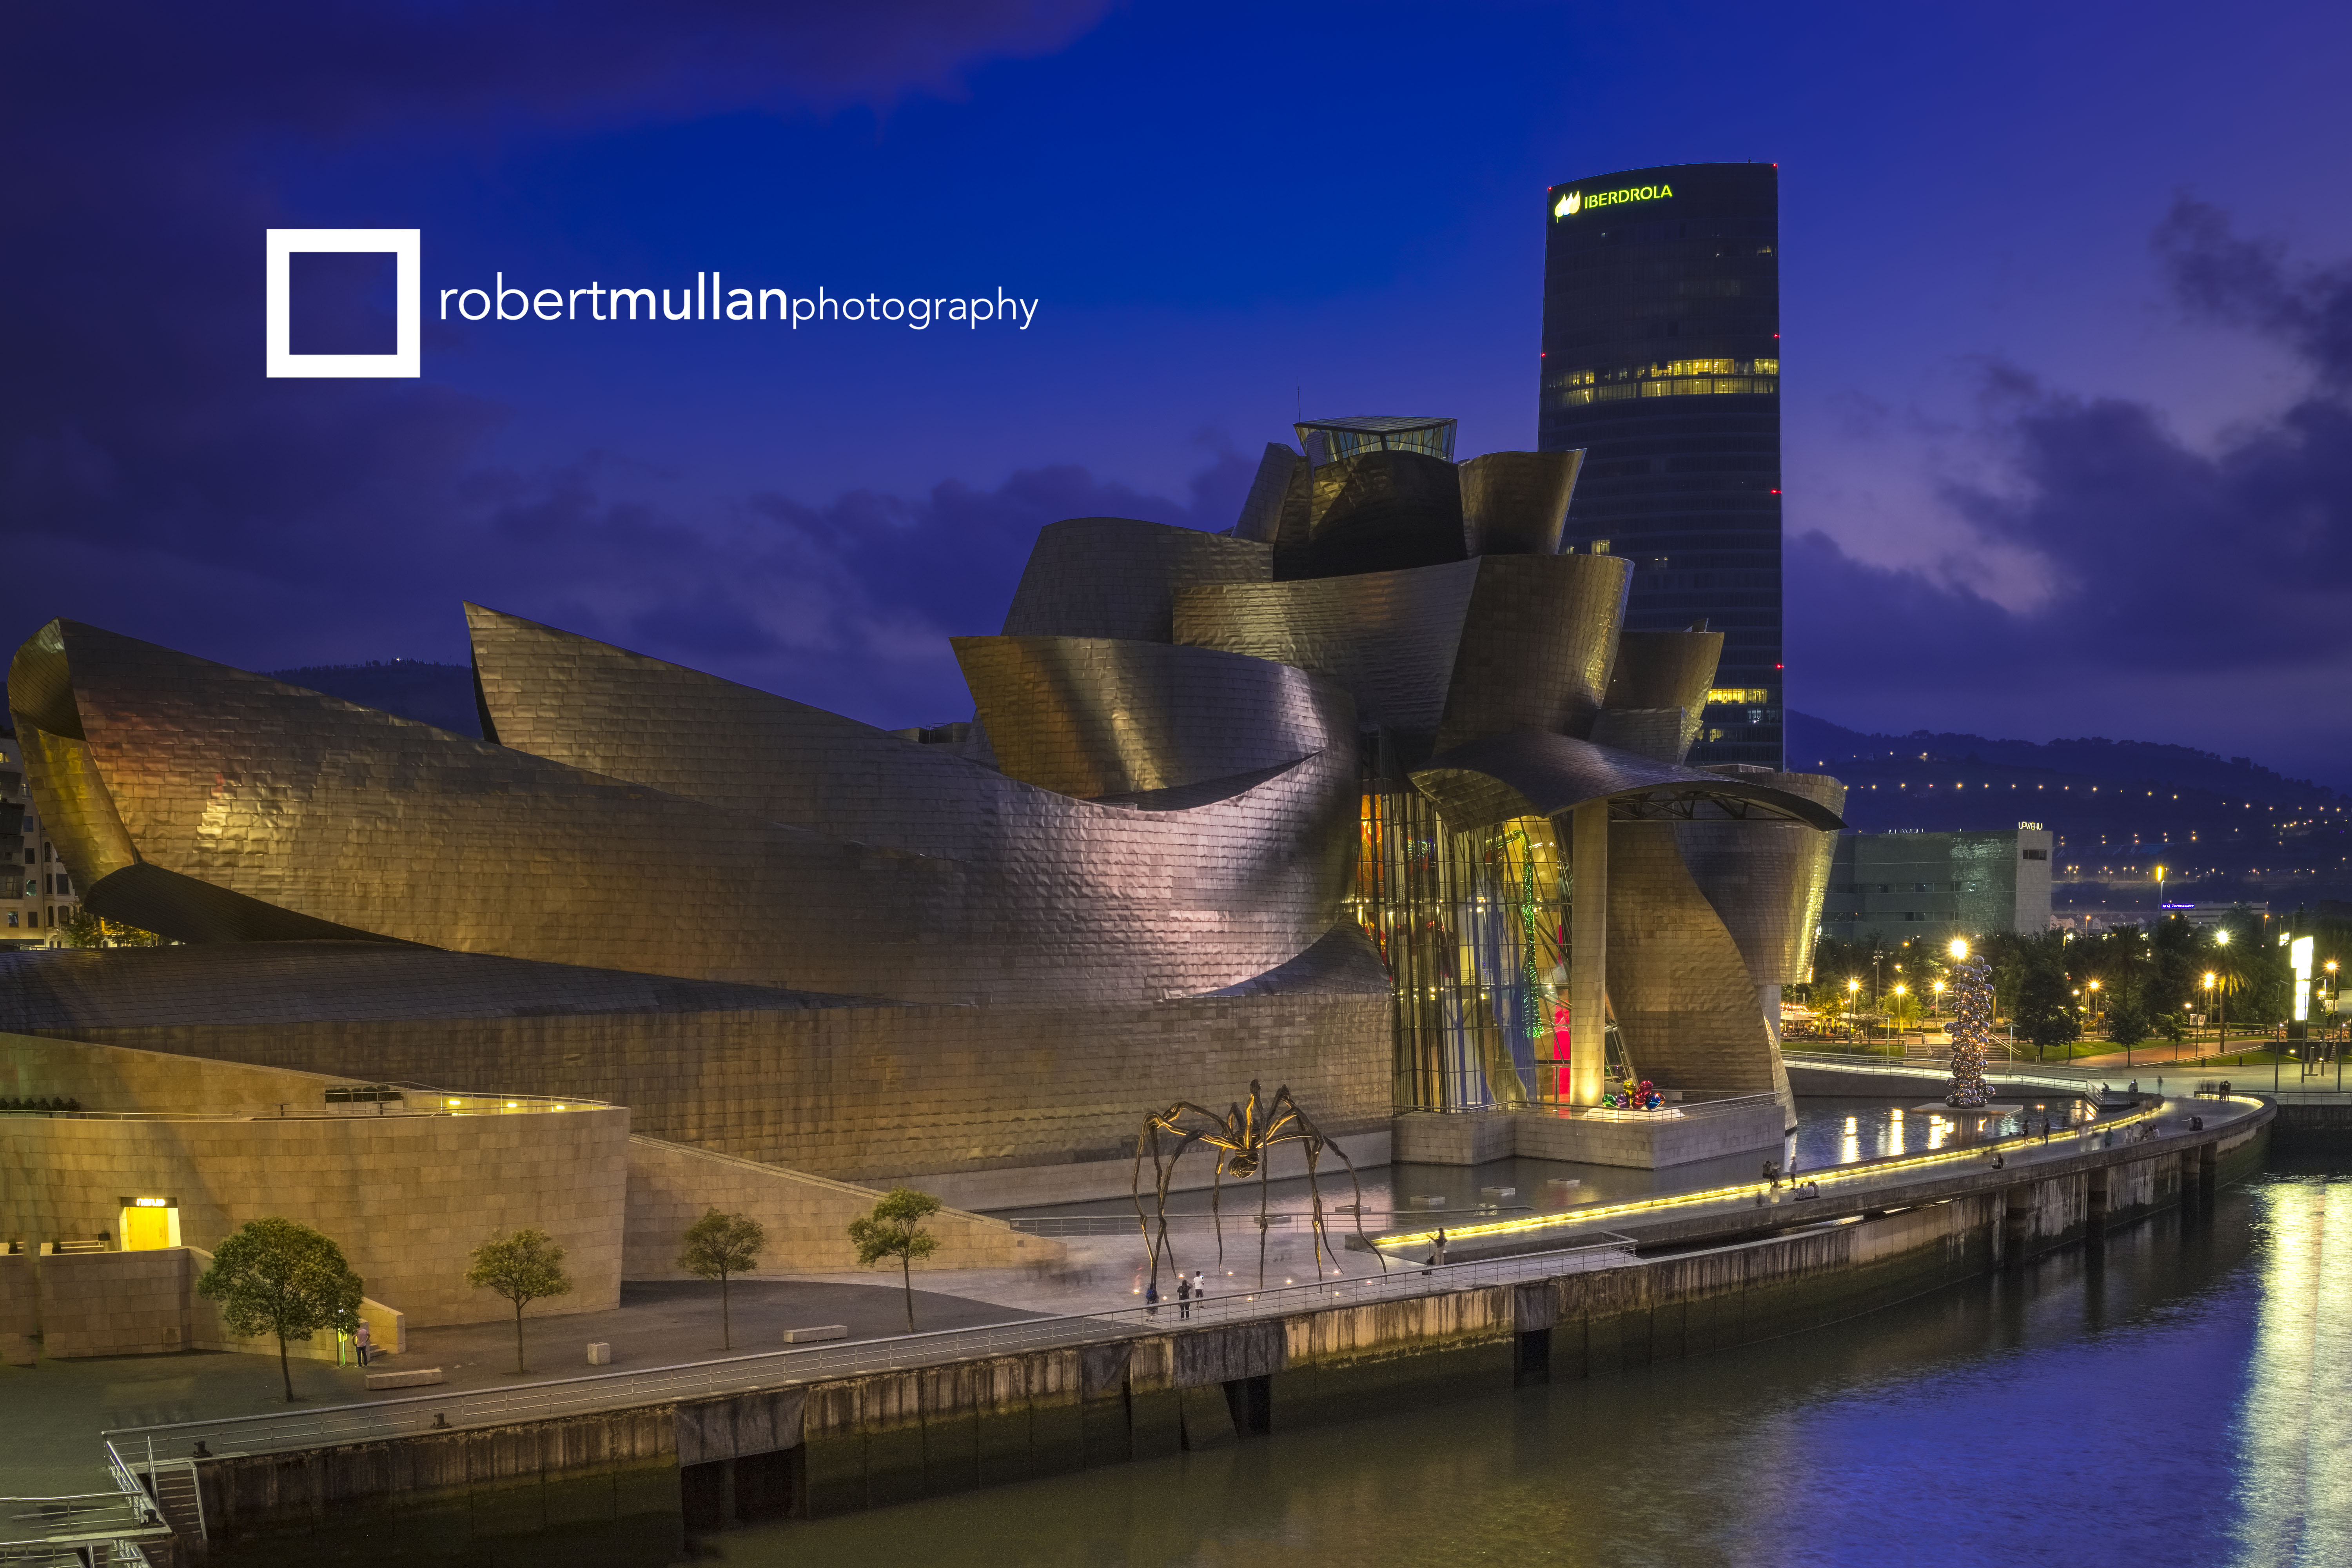 The Guggenheim Museum, Bilbao, photographed at dusk